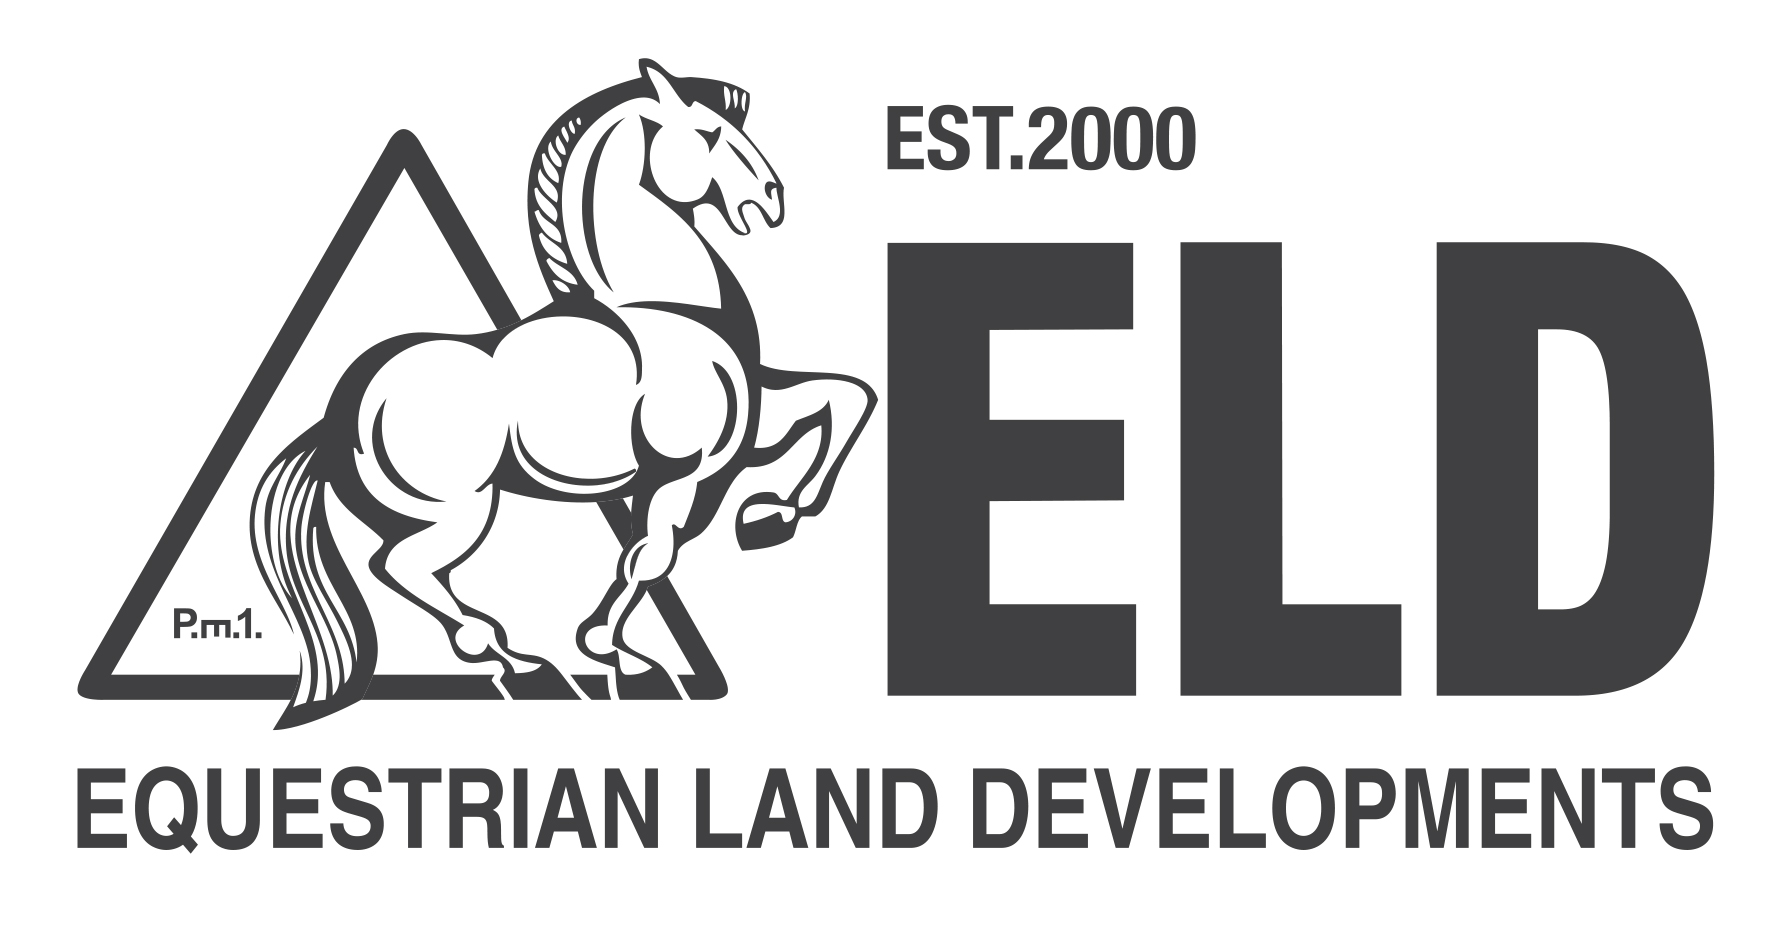 ELD_LOGO_WORDS_90%Black_est2000